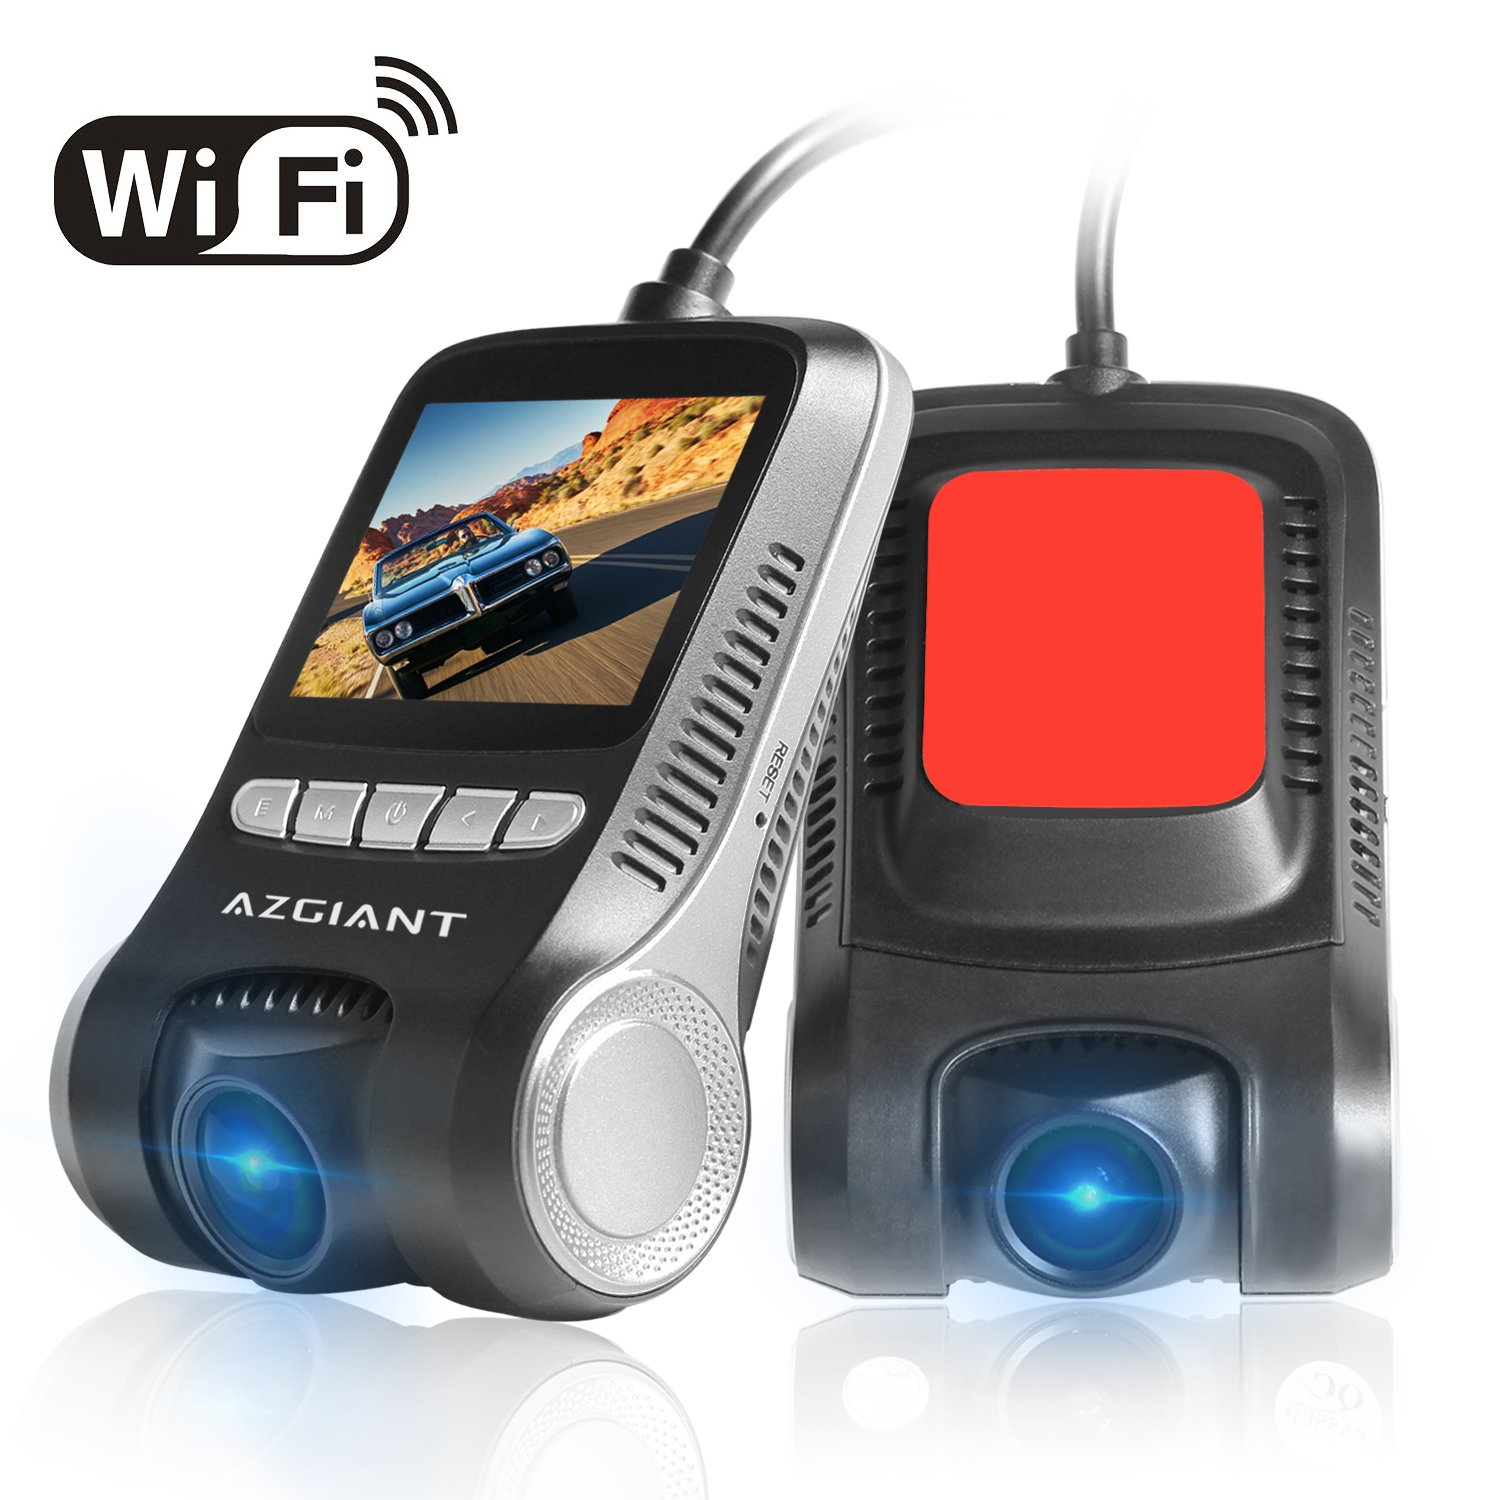 Parking Mode 32gb SD Card Included 2 LCD 170 Degree Dash Camera with Night Vision AZGIANT DT-88 dashboard camera HD 1080P WiFi Car Dash Cam Pro Loop Recording 2 LCD 170 Degree Dash Camera with Night Vision Dash Cam for Cars